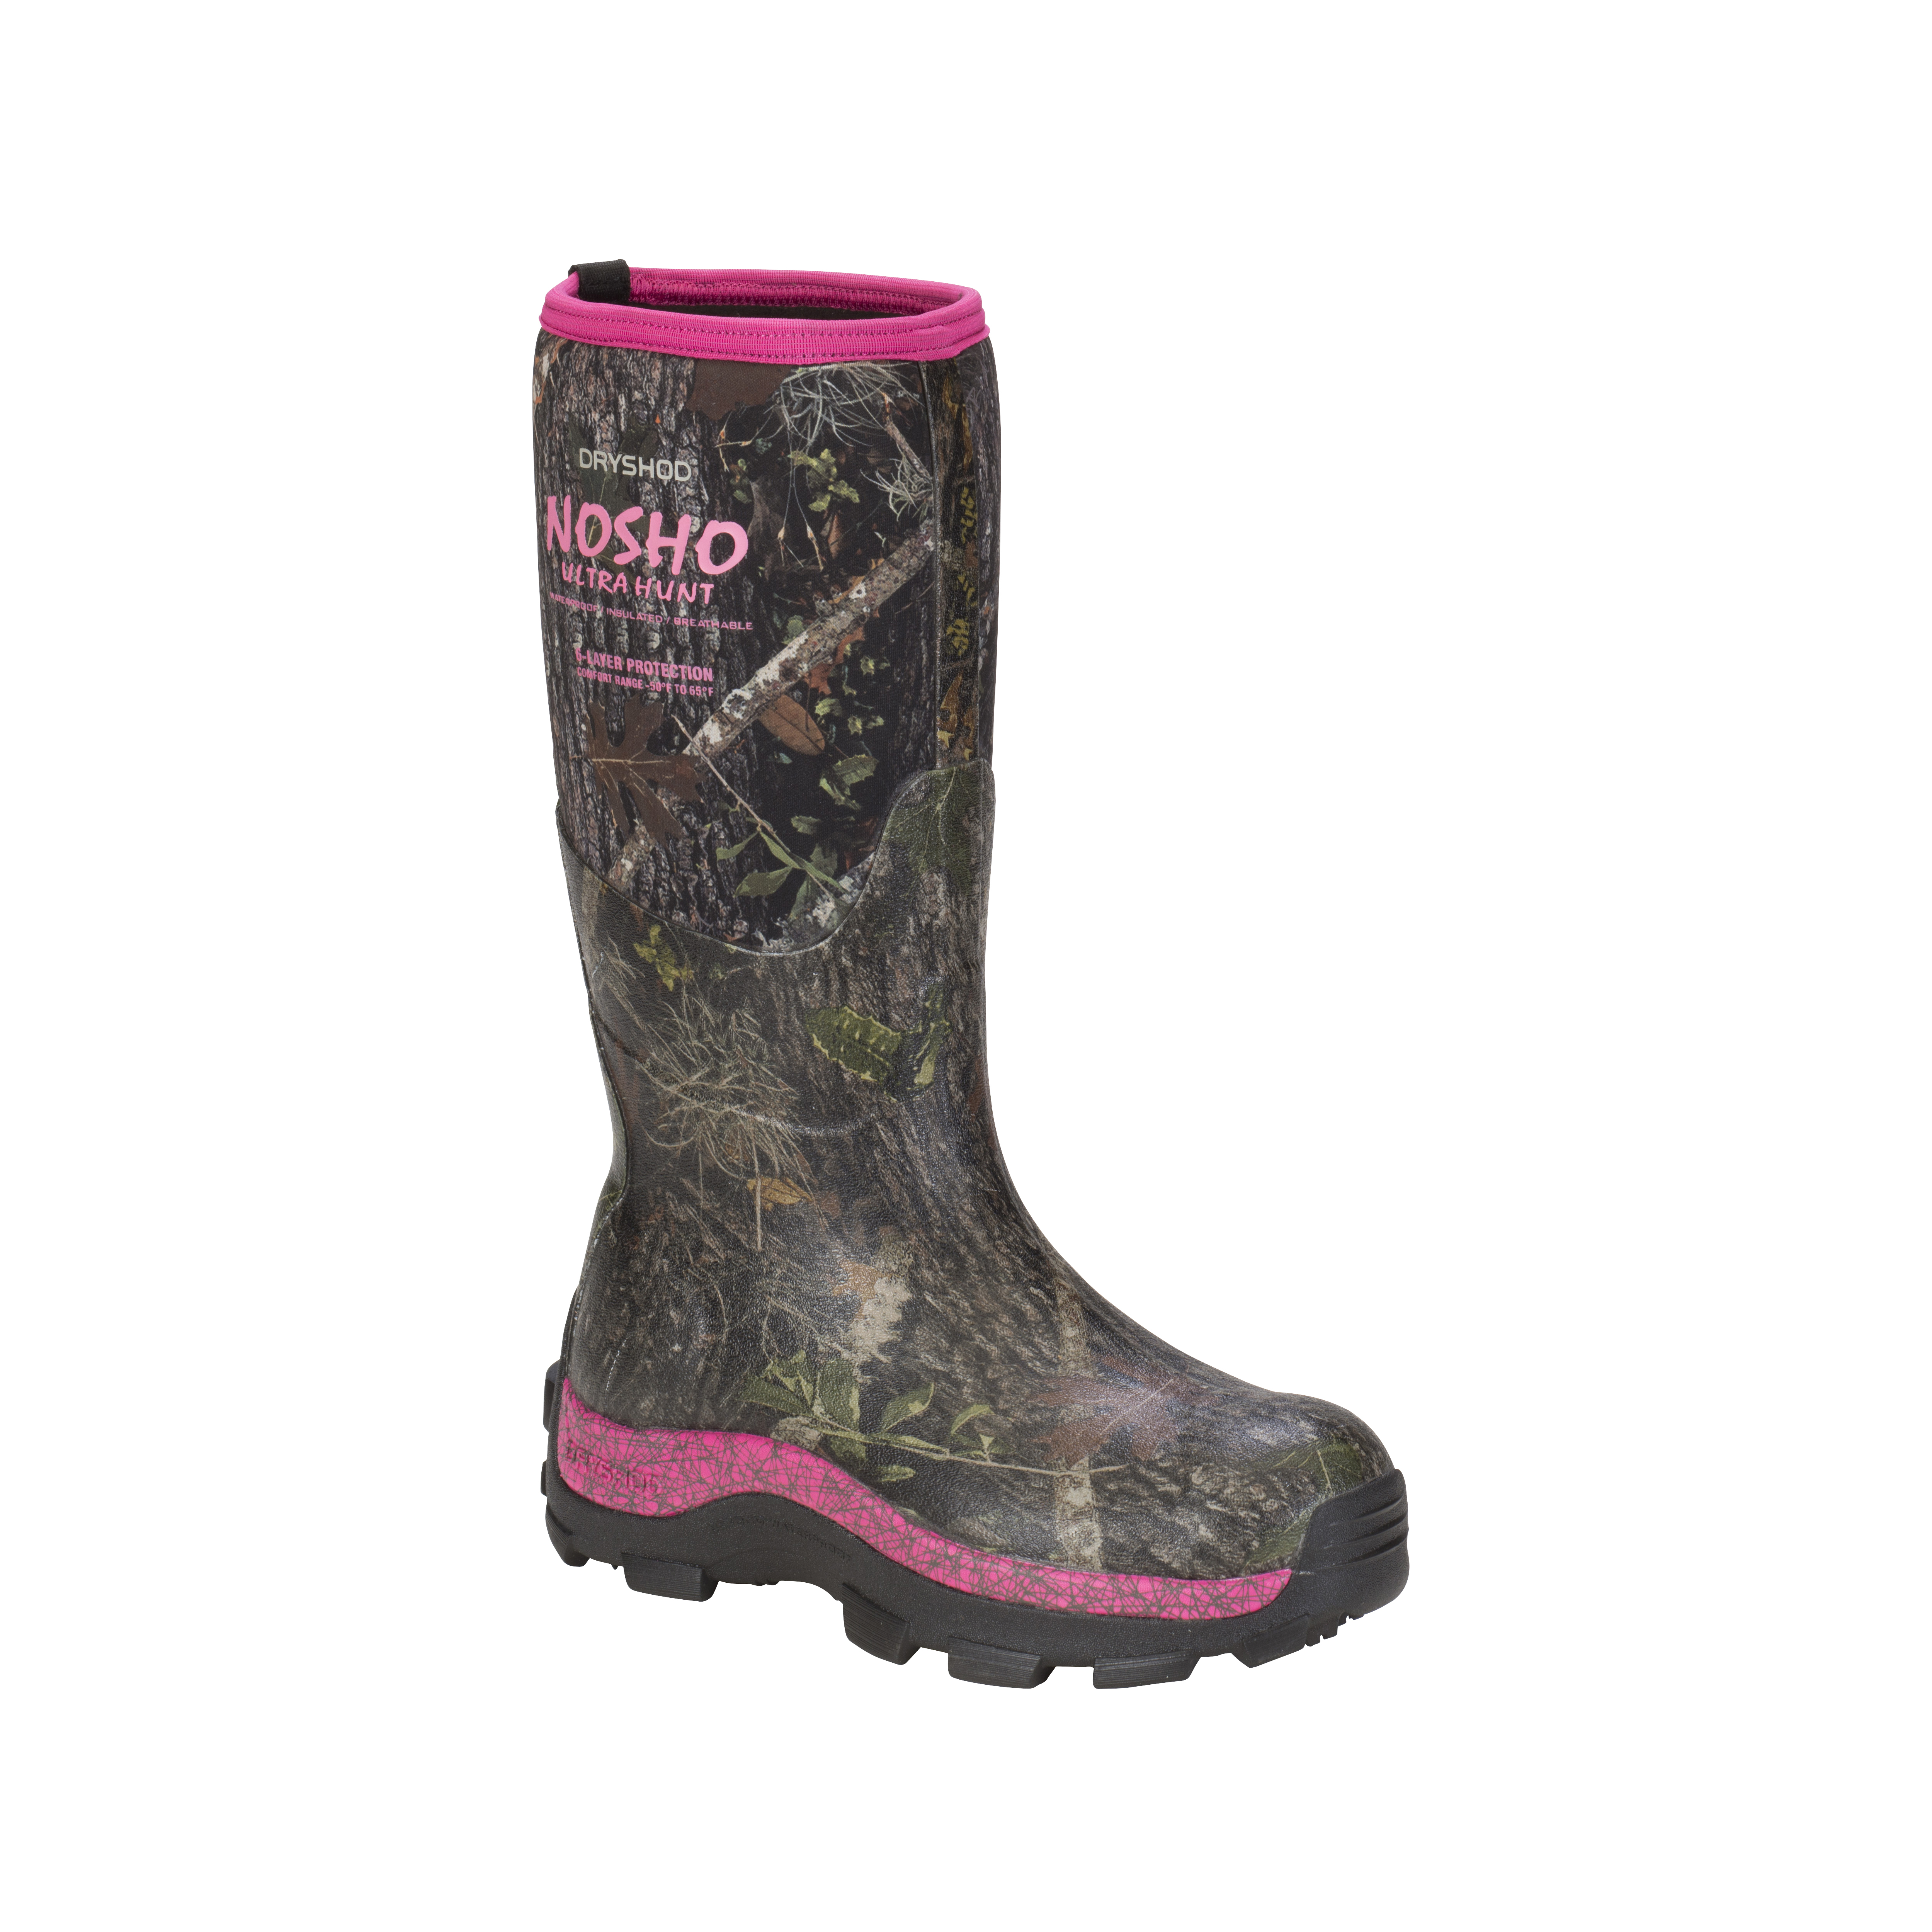 Dryshod Women's NoSho Ultra Hunt Camo Extreme Cold-Condition Boots - Hi Cut - Size 9, Camo/Pink